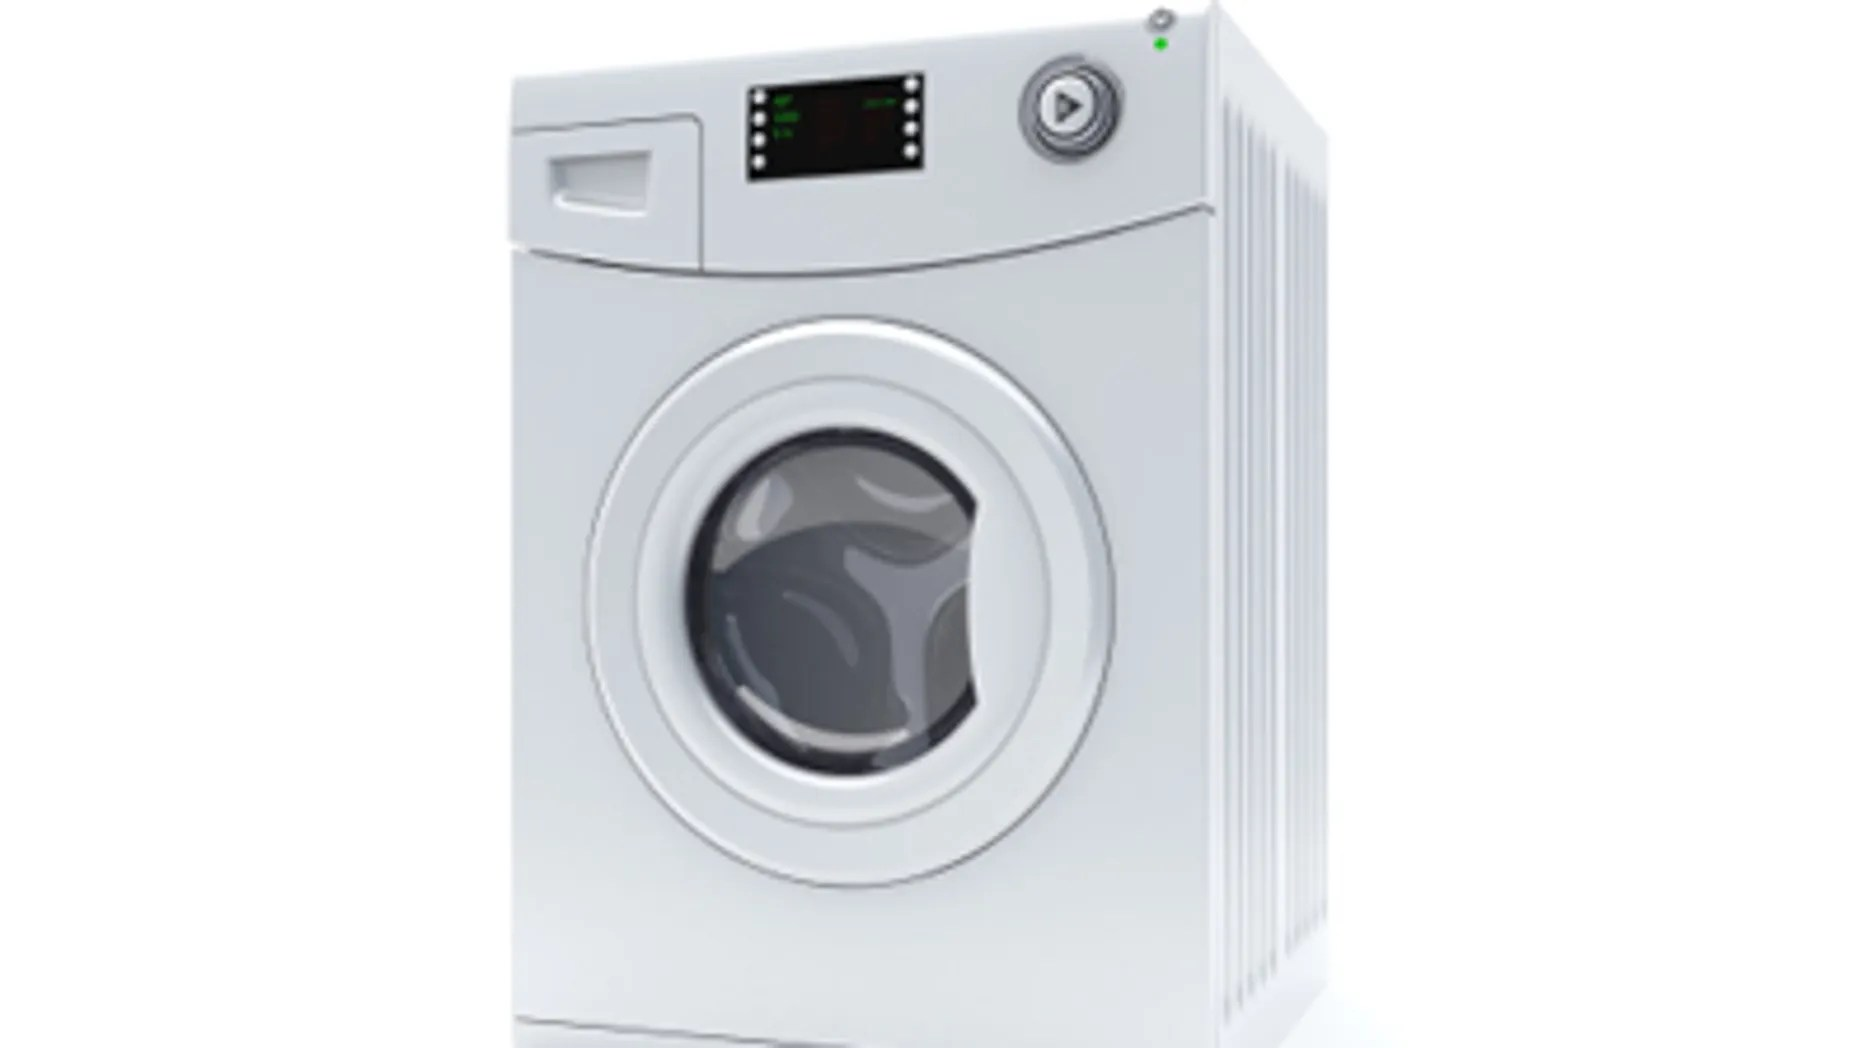 Washer And Dryer Calgary Do Front Load Washers Save Money Or Just Water Fox News